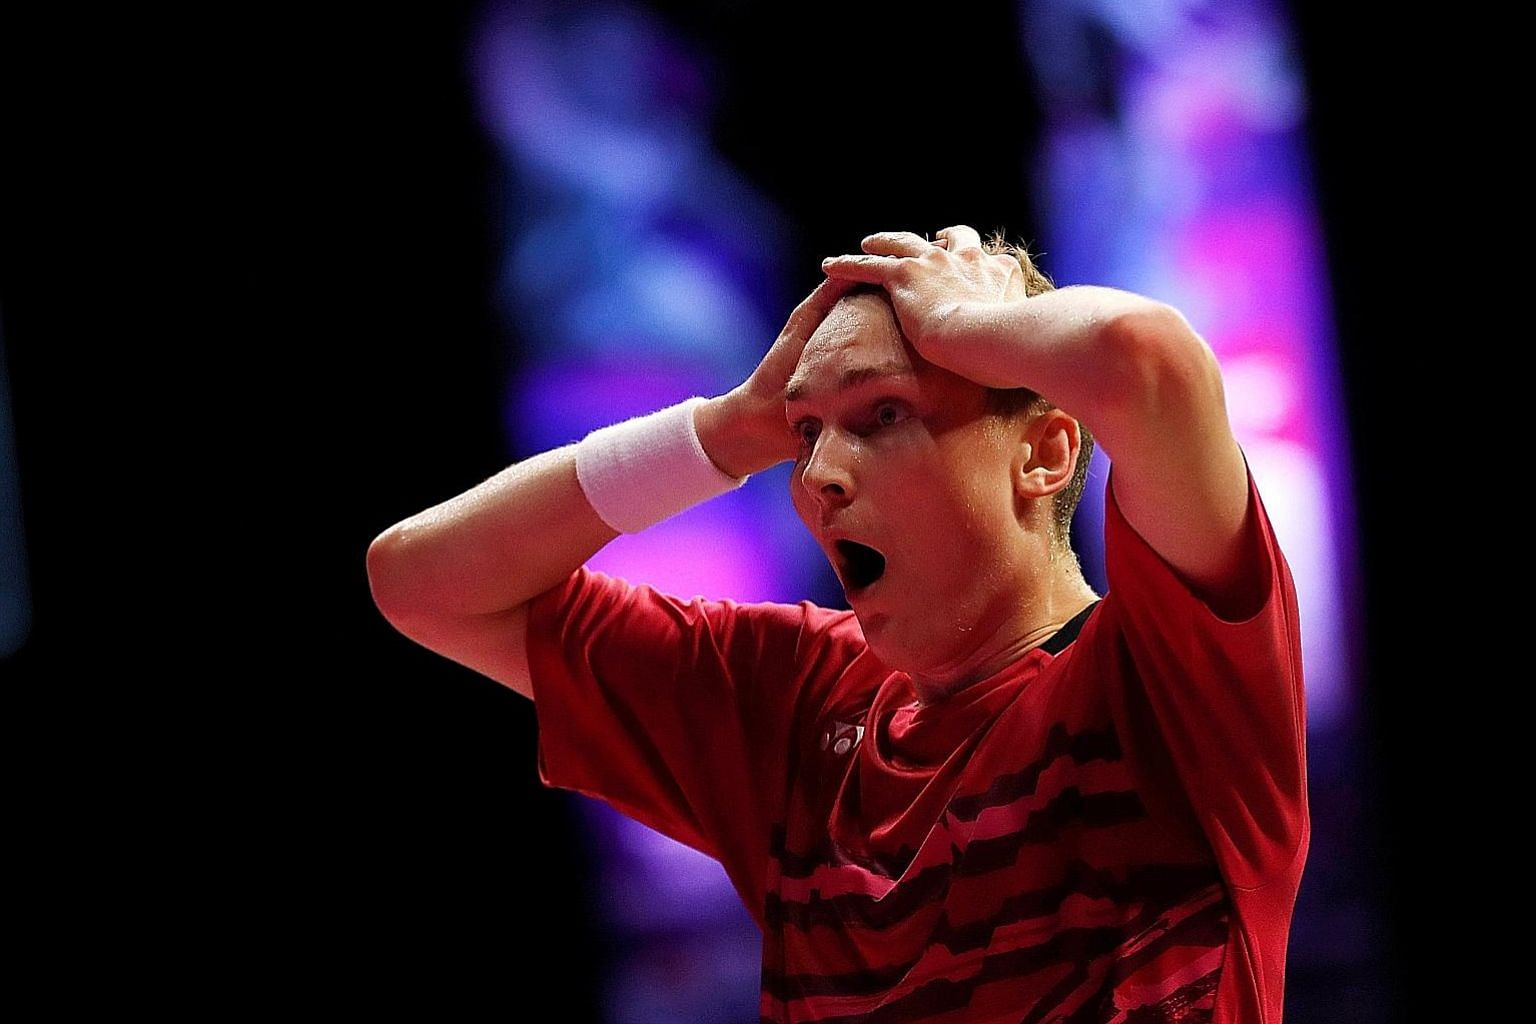 Viktor Axelsen shows his disbelief before sinking to the court after defeating Lin Dan 22-20, 21-16 in the men's singles final of the World Championships in Glasgow on Sunday.